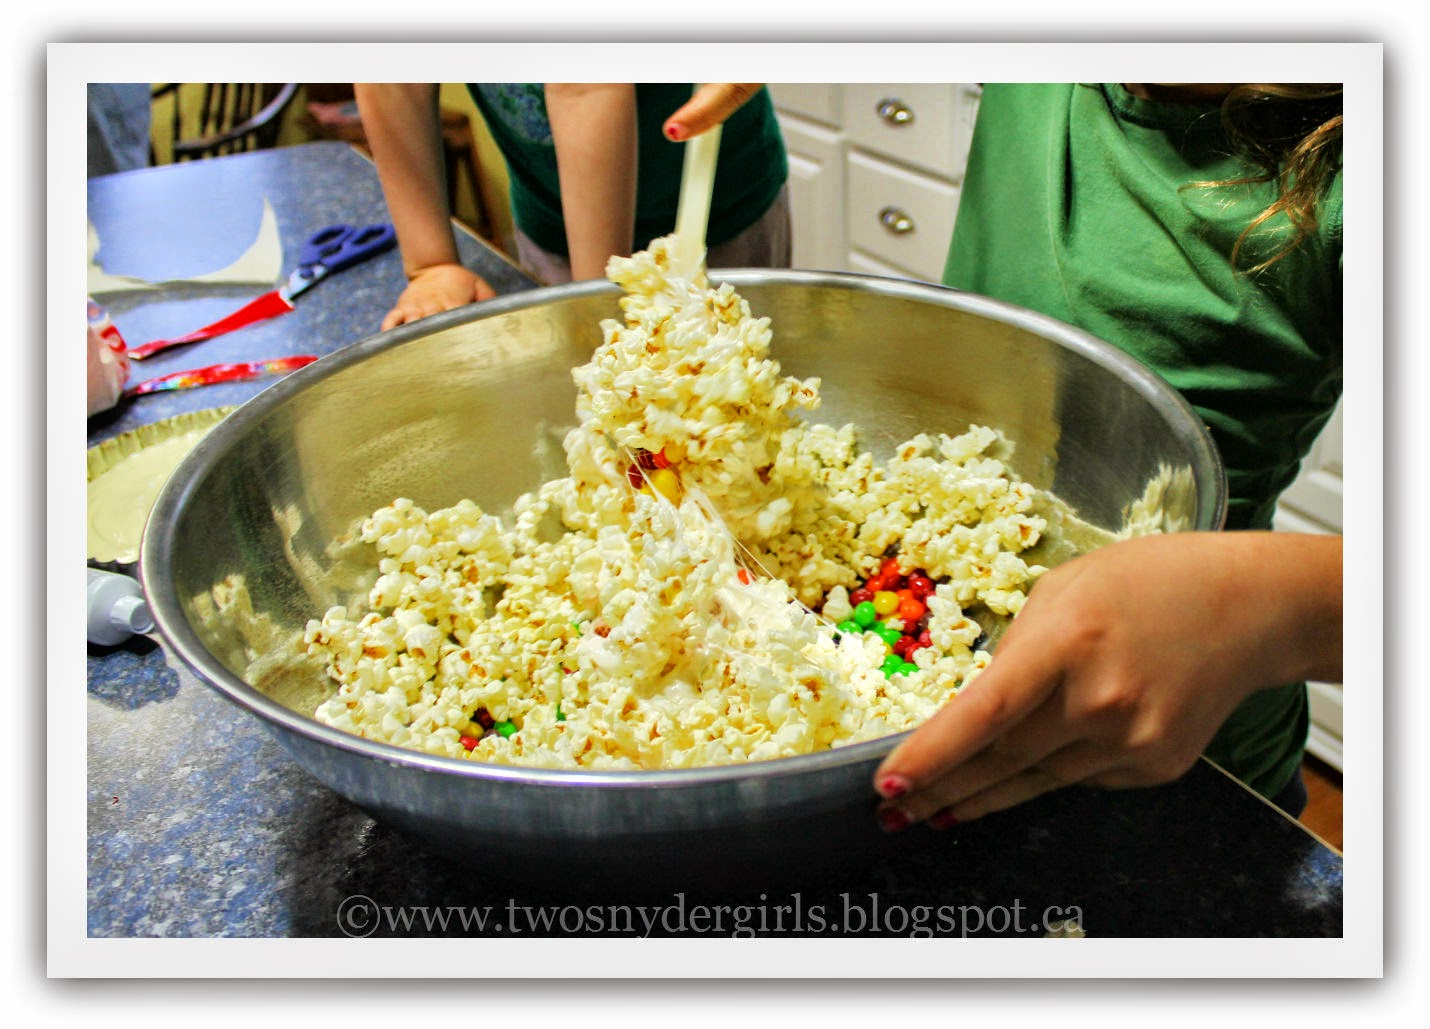 Mixing popcorn candy and melted marshmallows